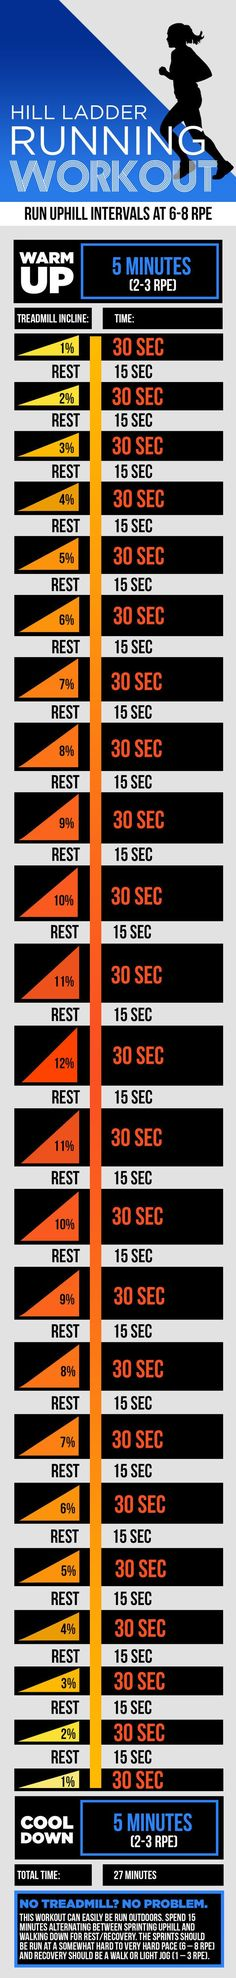 Hill Ladder Workout | 9 Quick Running Workouts You Can Do On A Treadmill Or Outdoors